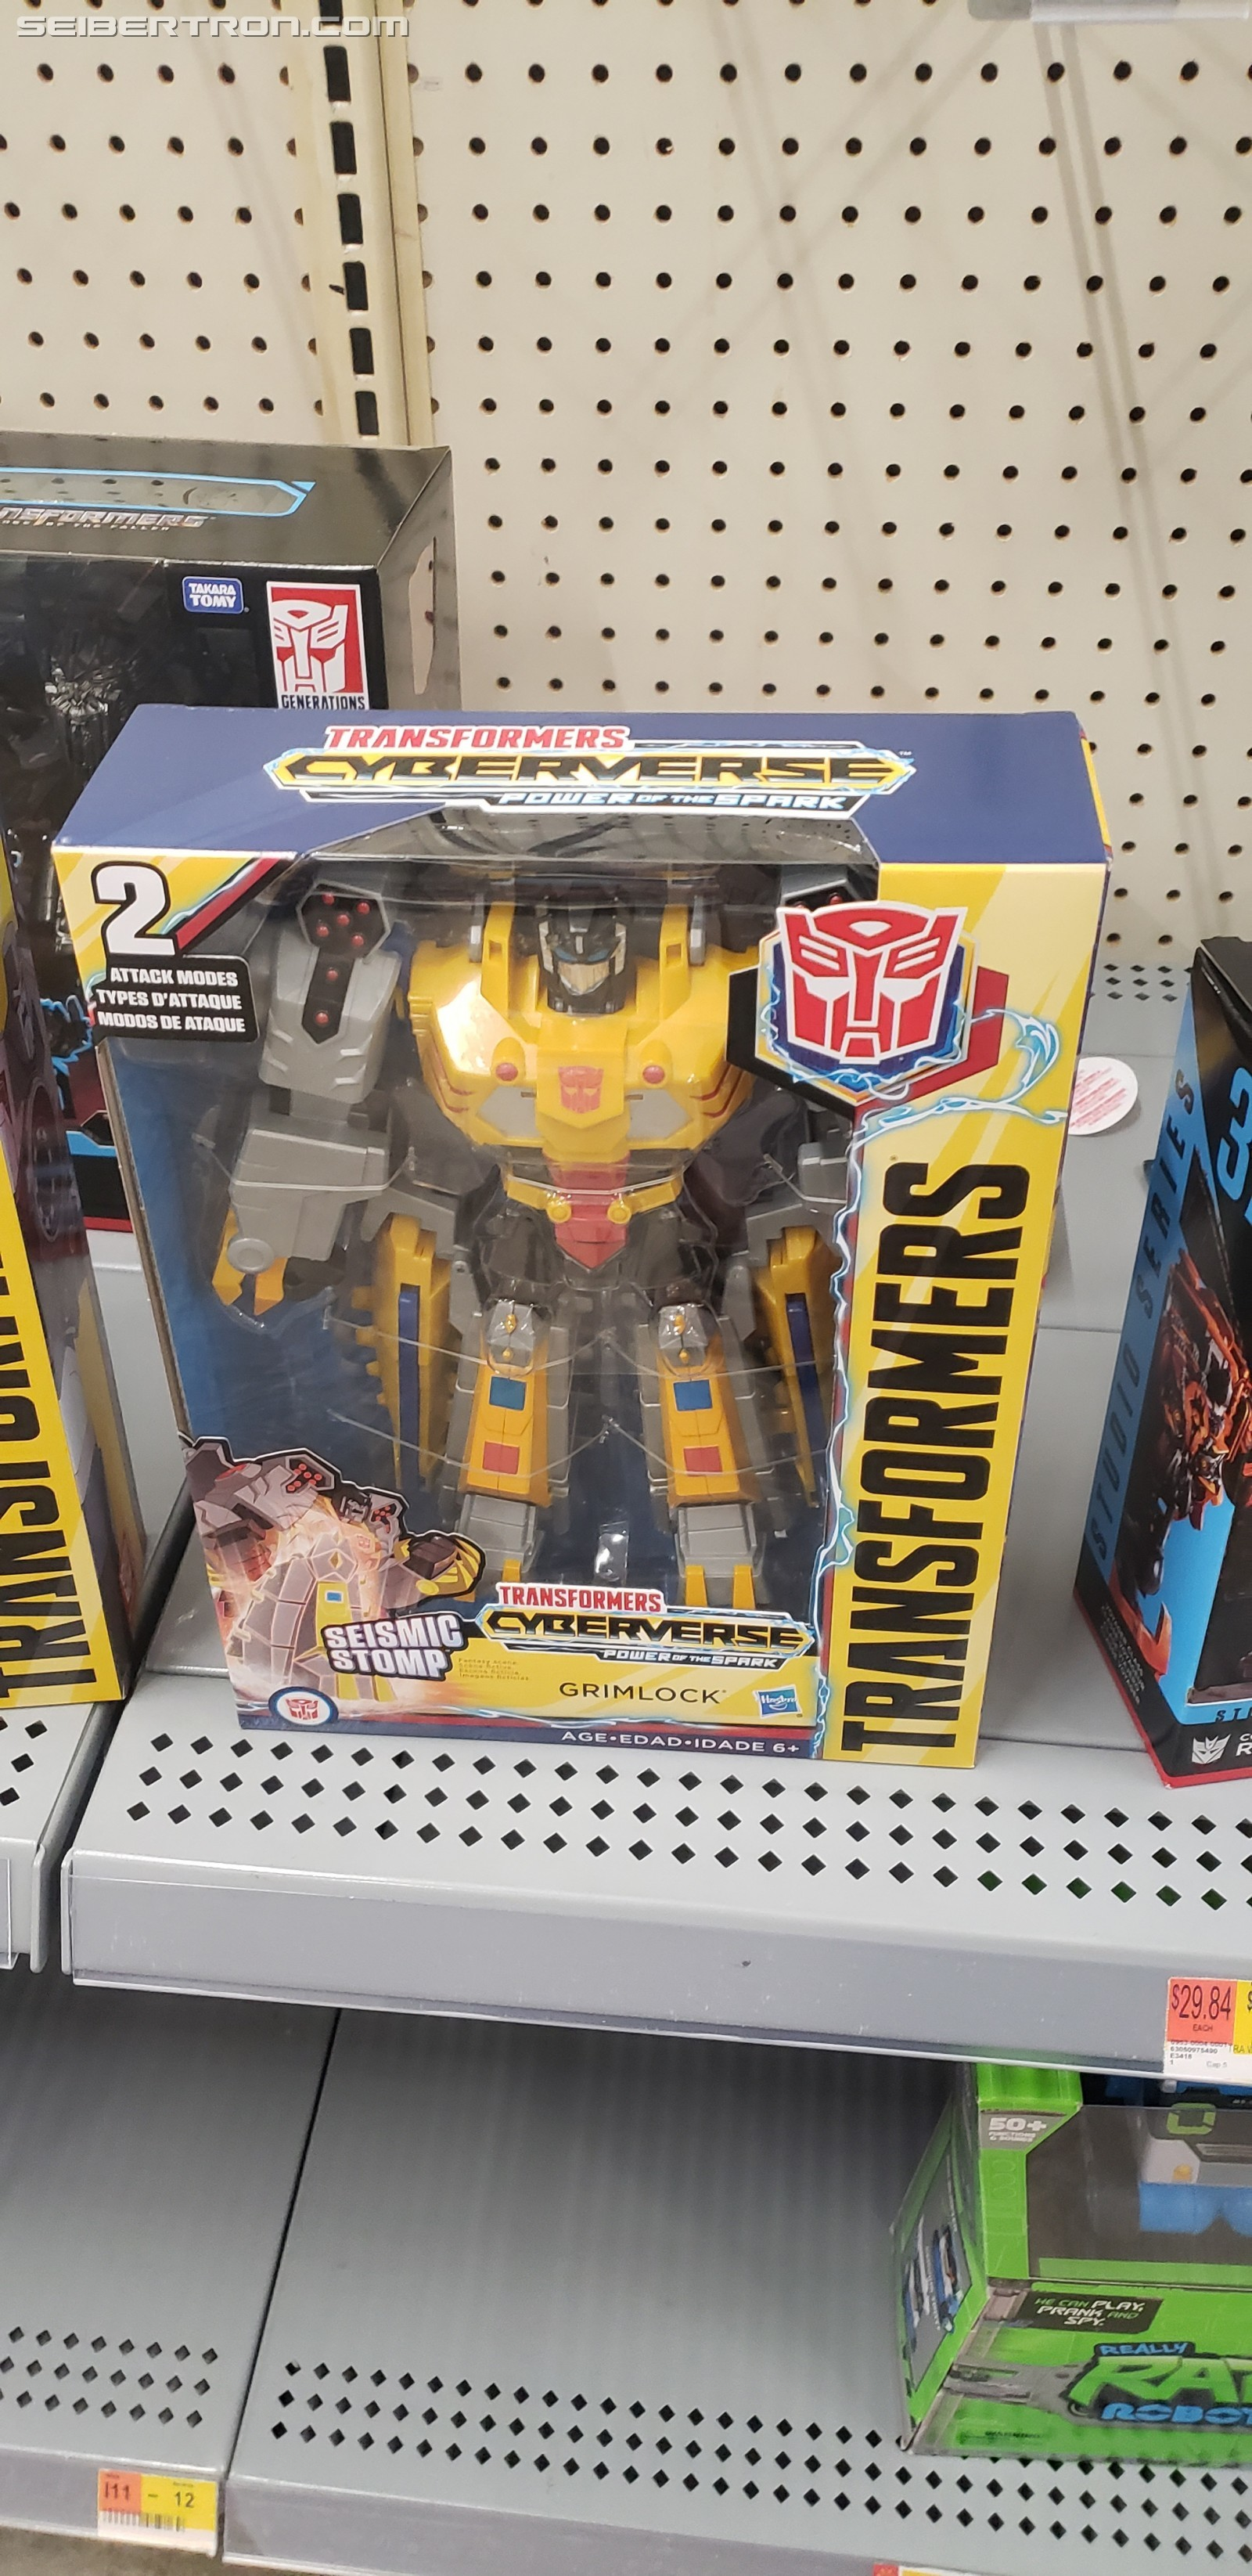 Transformers News: Transformers Cyberverse Ultimate Grimlock Found at US Retail